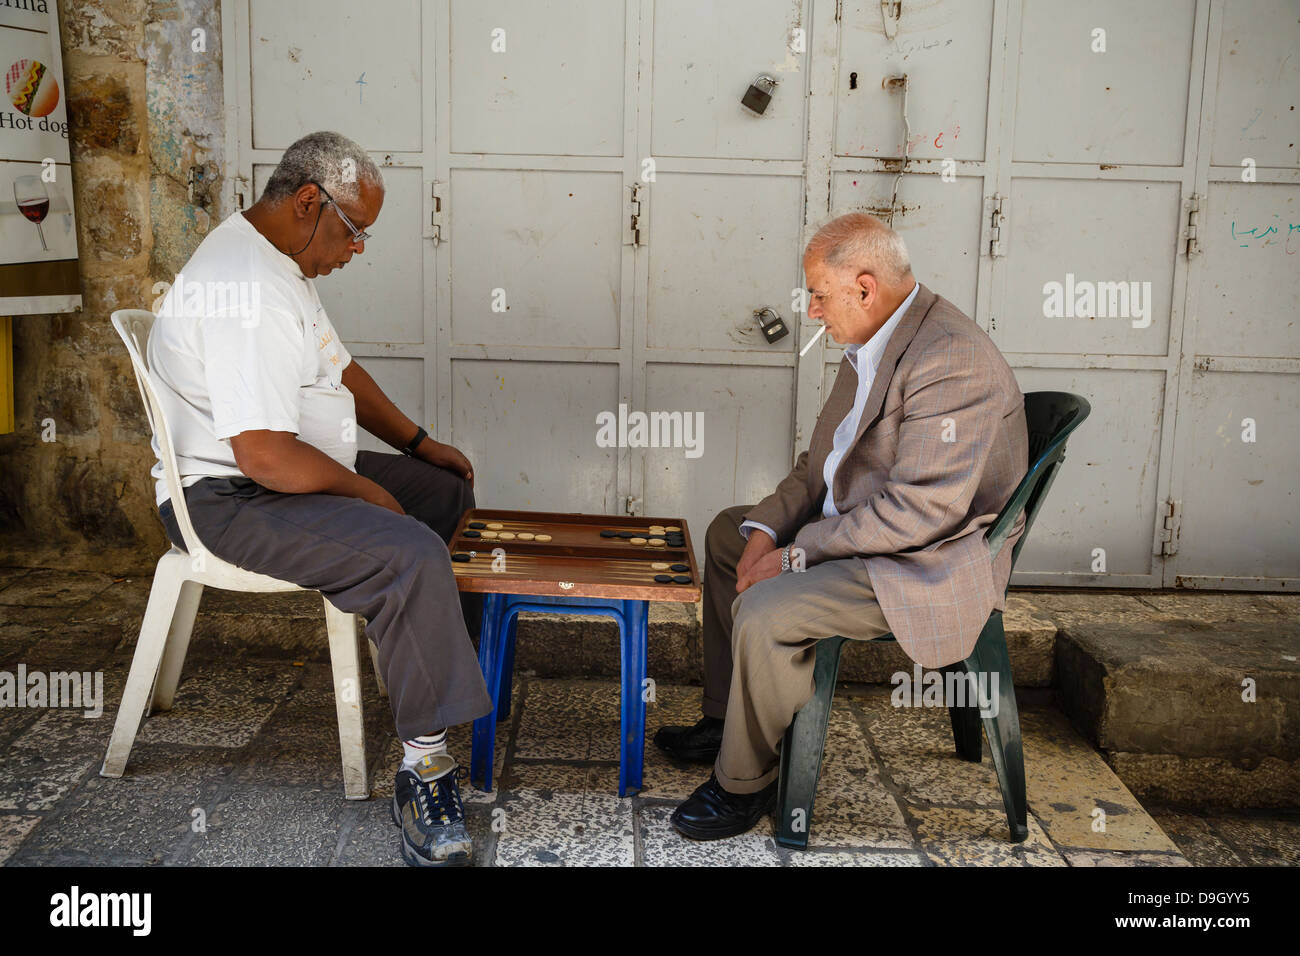 arab men playing backgammon at the old city, Jerusalem, Israel. - Stock Image